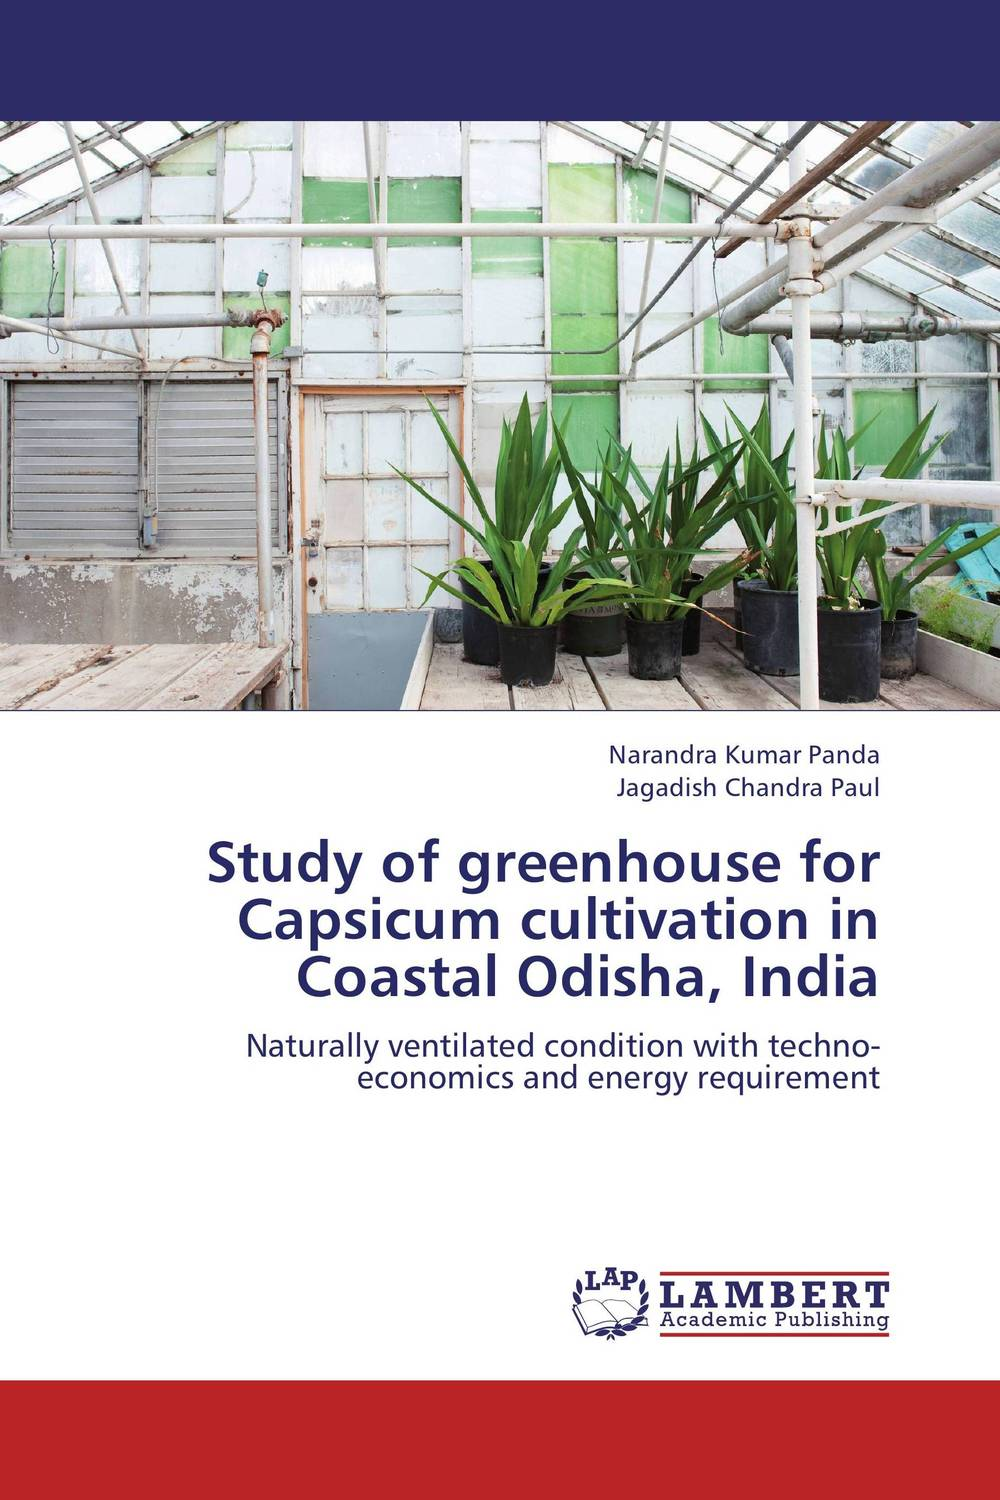 Study of greenhouse for Capsicum cultivation in Coastal Odisha, India